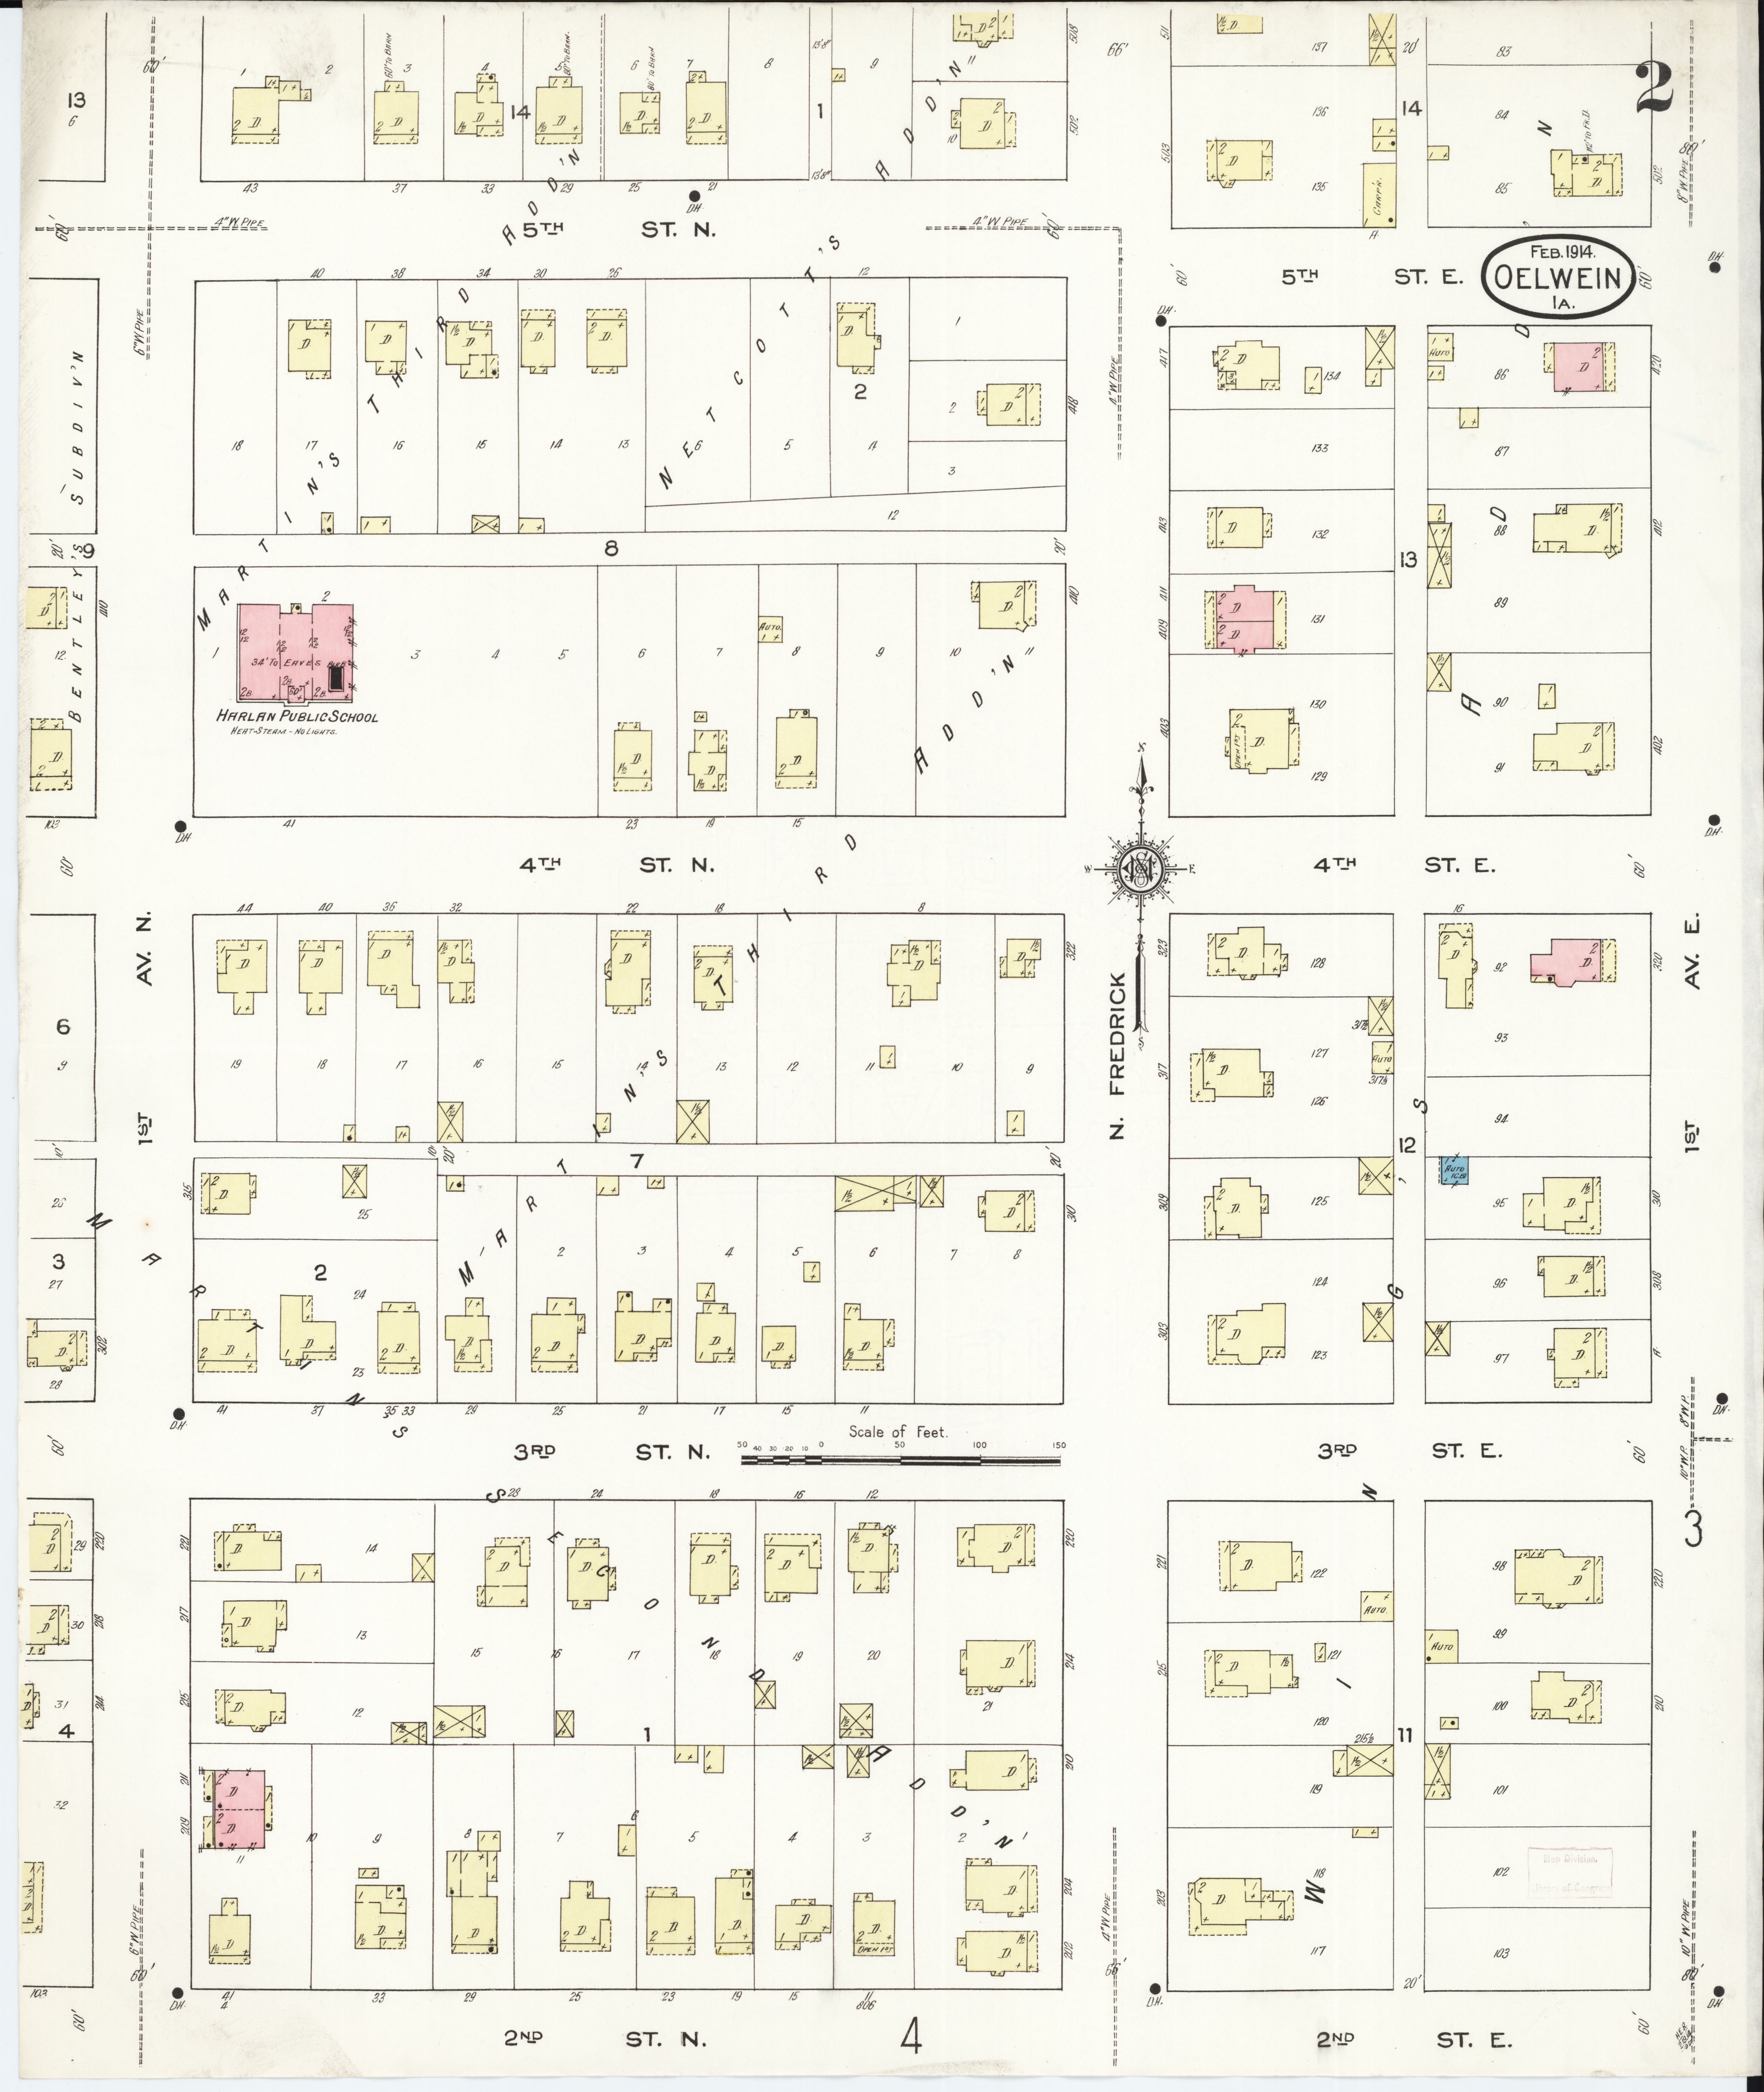 Oelwein Iowa Map.File Sanborn Fire Insurance Map From Oelwein Fayette County Iowa